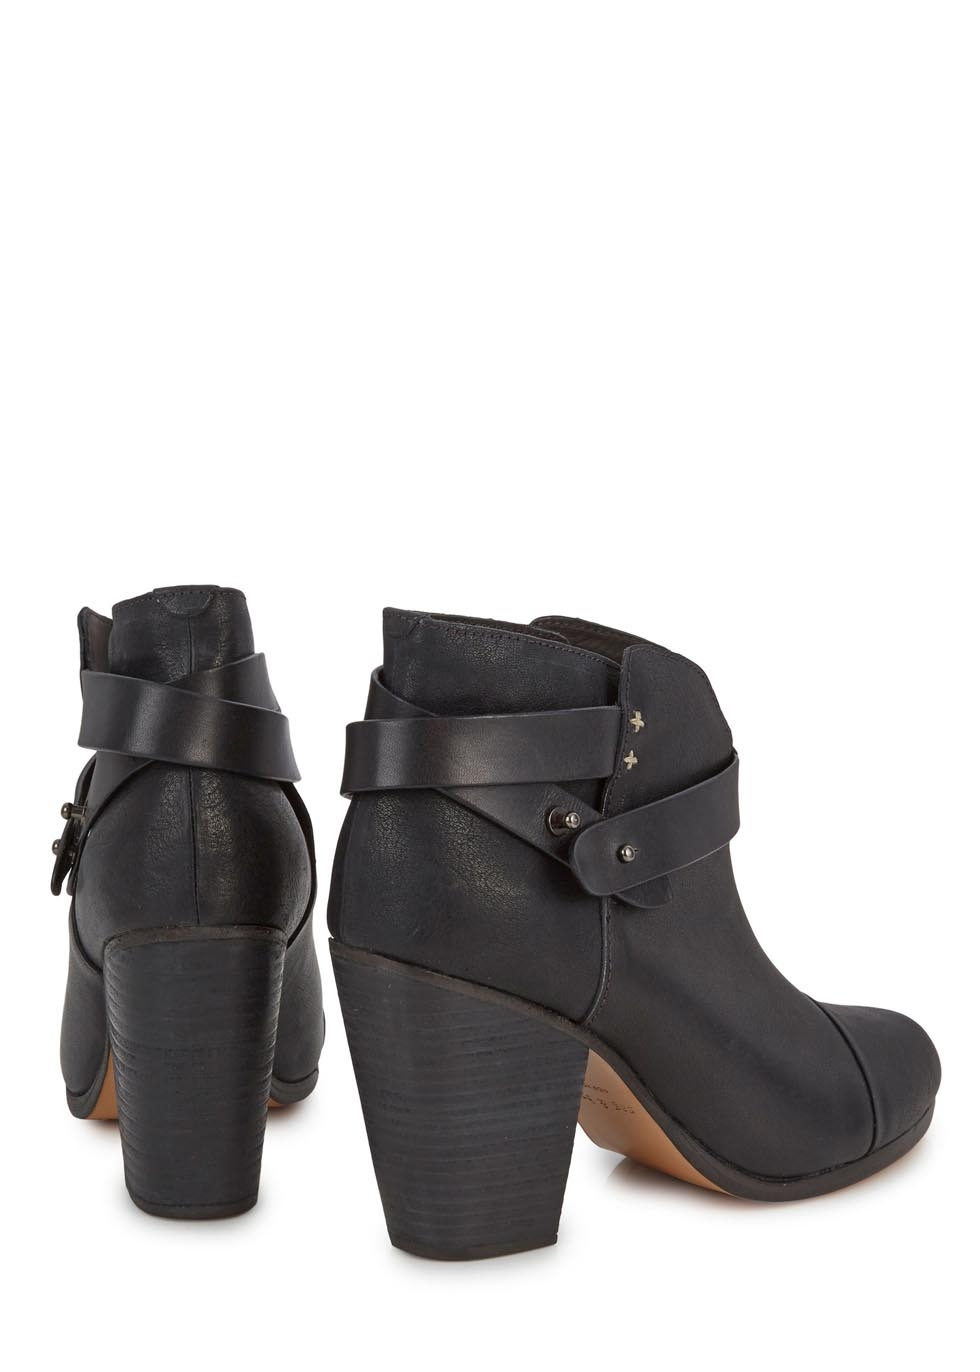 rag bone classic harrow black leather ankle boots in